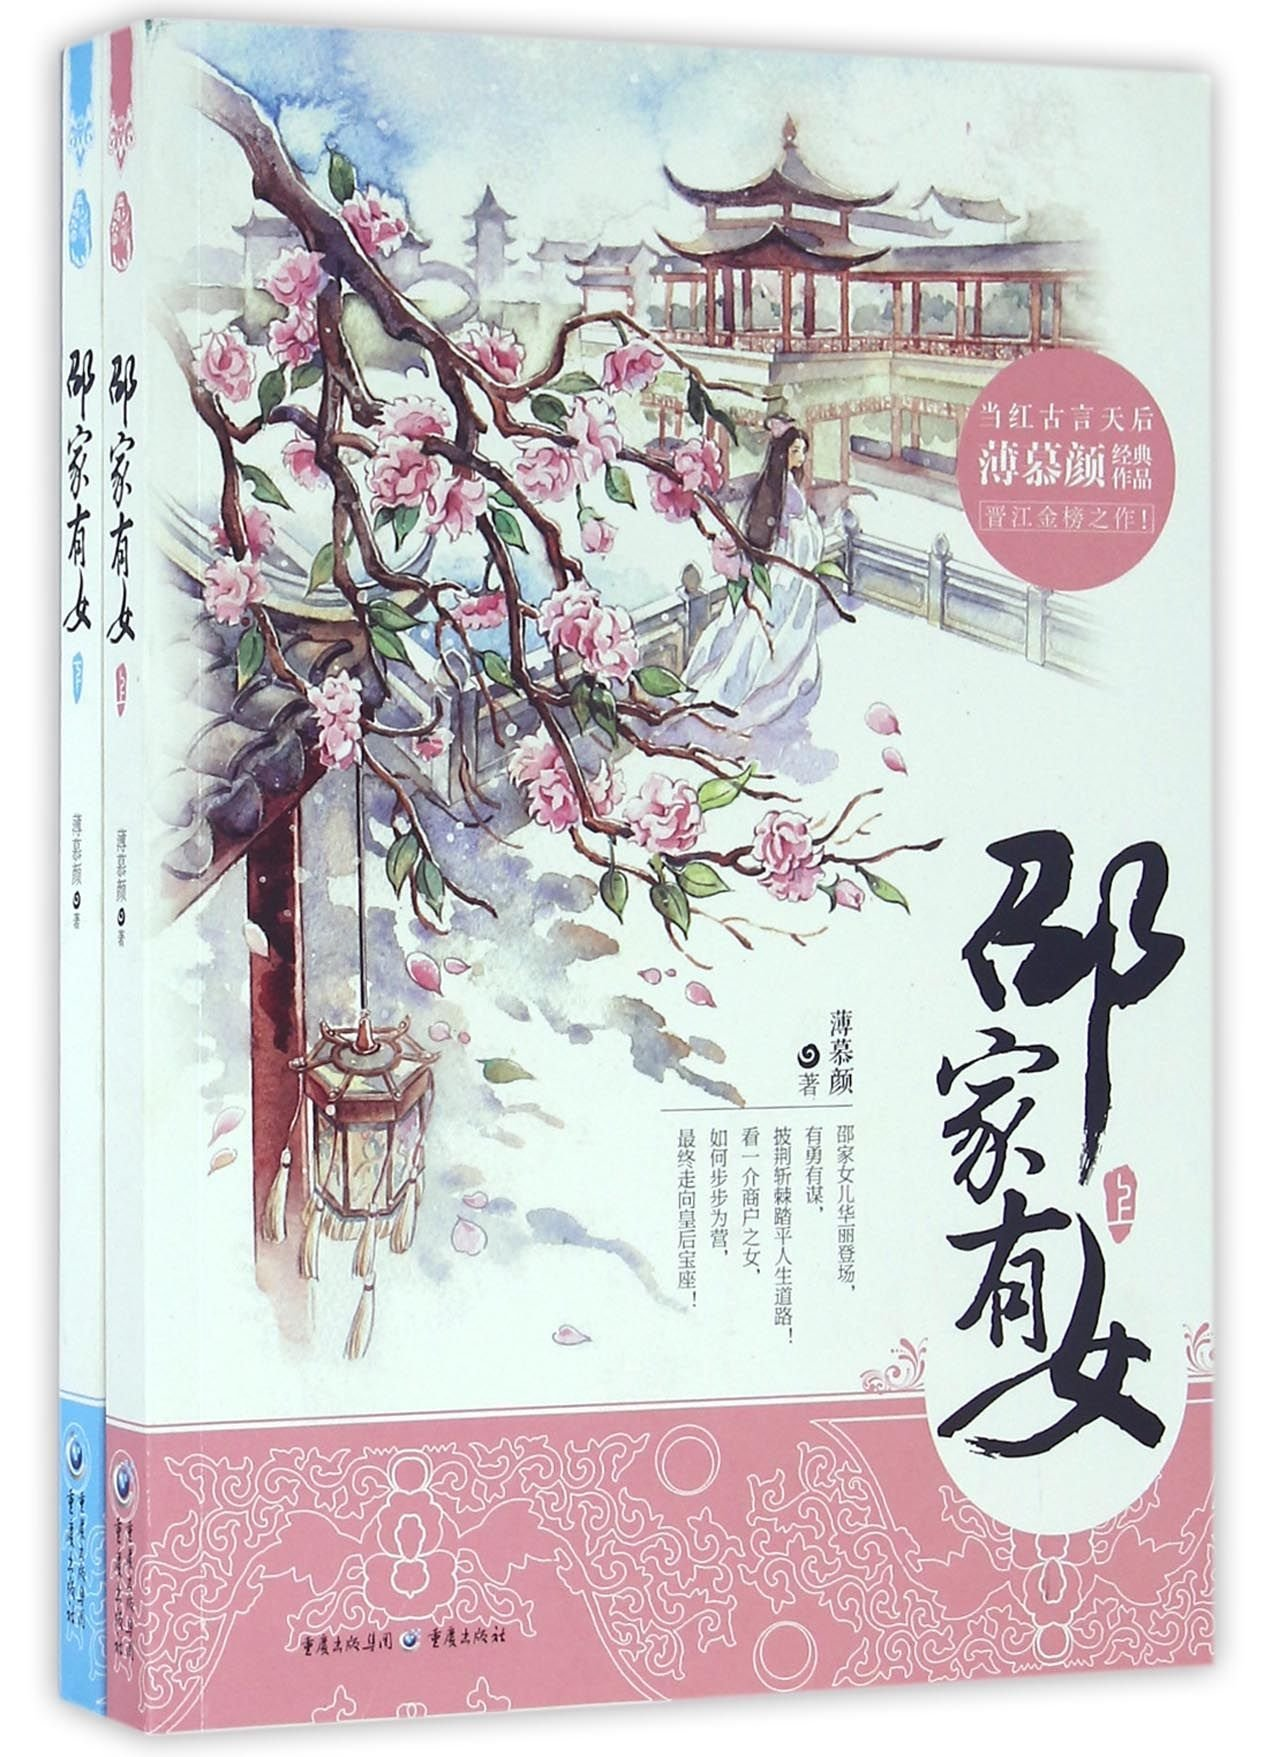 Daughter of Shao Famliy (Chinese Edition) ebook